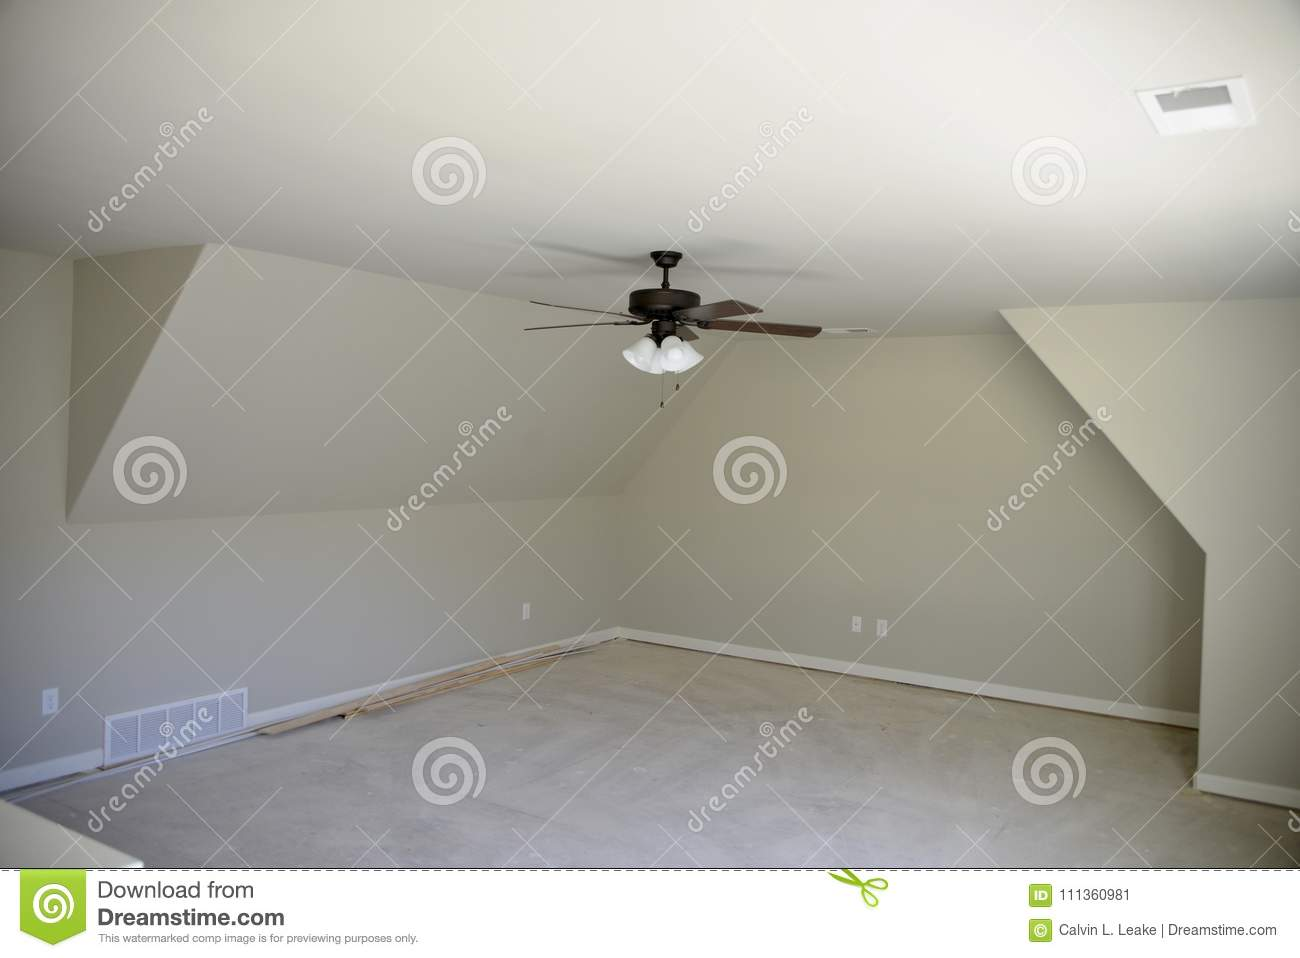 Ceiling Fan In A Bedroom Stock Image Image Of Concrete 111360981